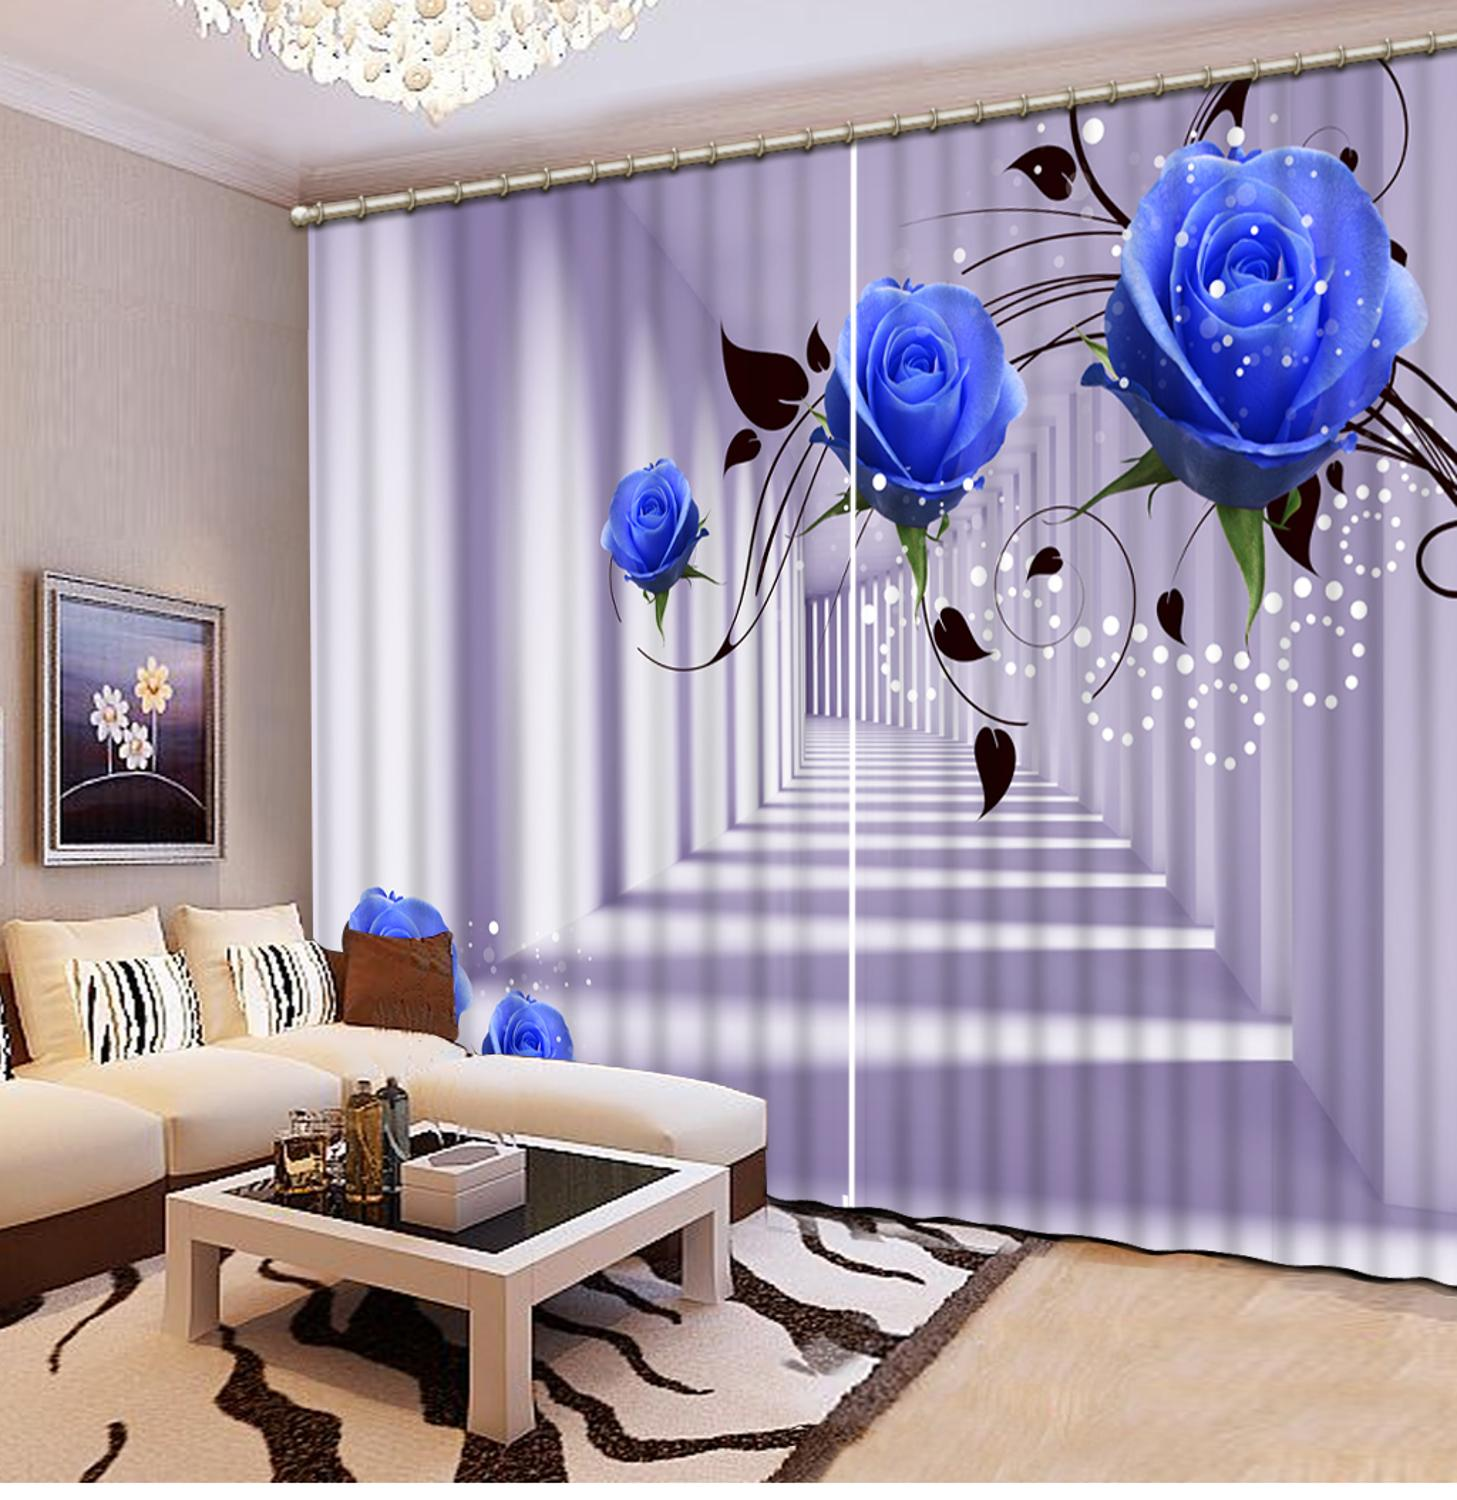 ustomized size Luxury Blackout 3D Window Curtains For Living Room blue rose curtains Decoration curtainsustomized size Luxury Blackout 3D Window Curtains For Living Room blue rose curtains Decoration curtains